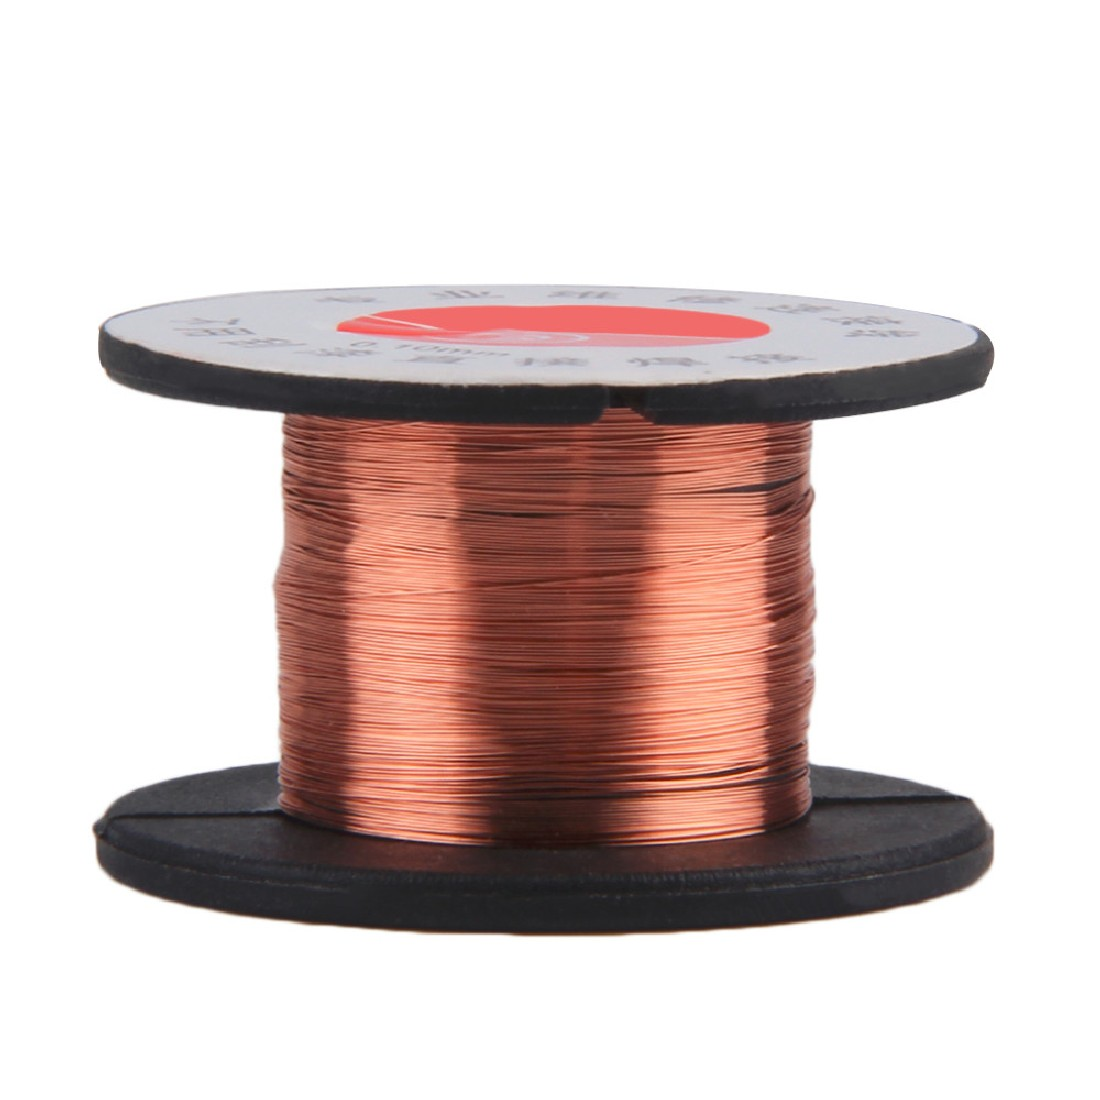 Best 0.1MM Weld Copper Soldering Solder PPA Enamelled Reel Wire For Welding Repair Maintenance